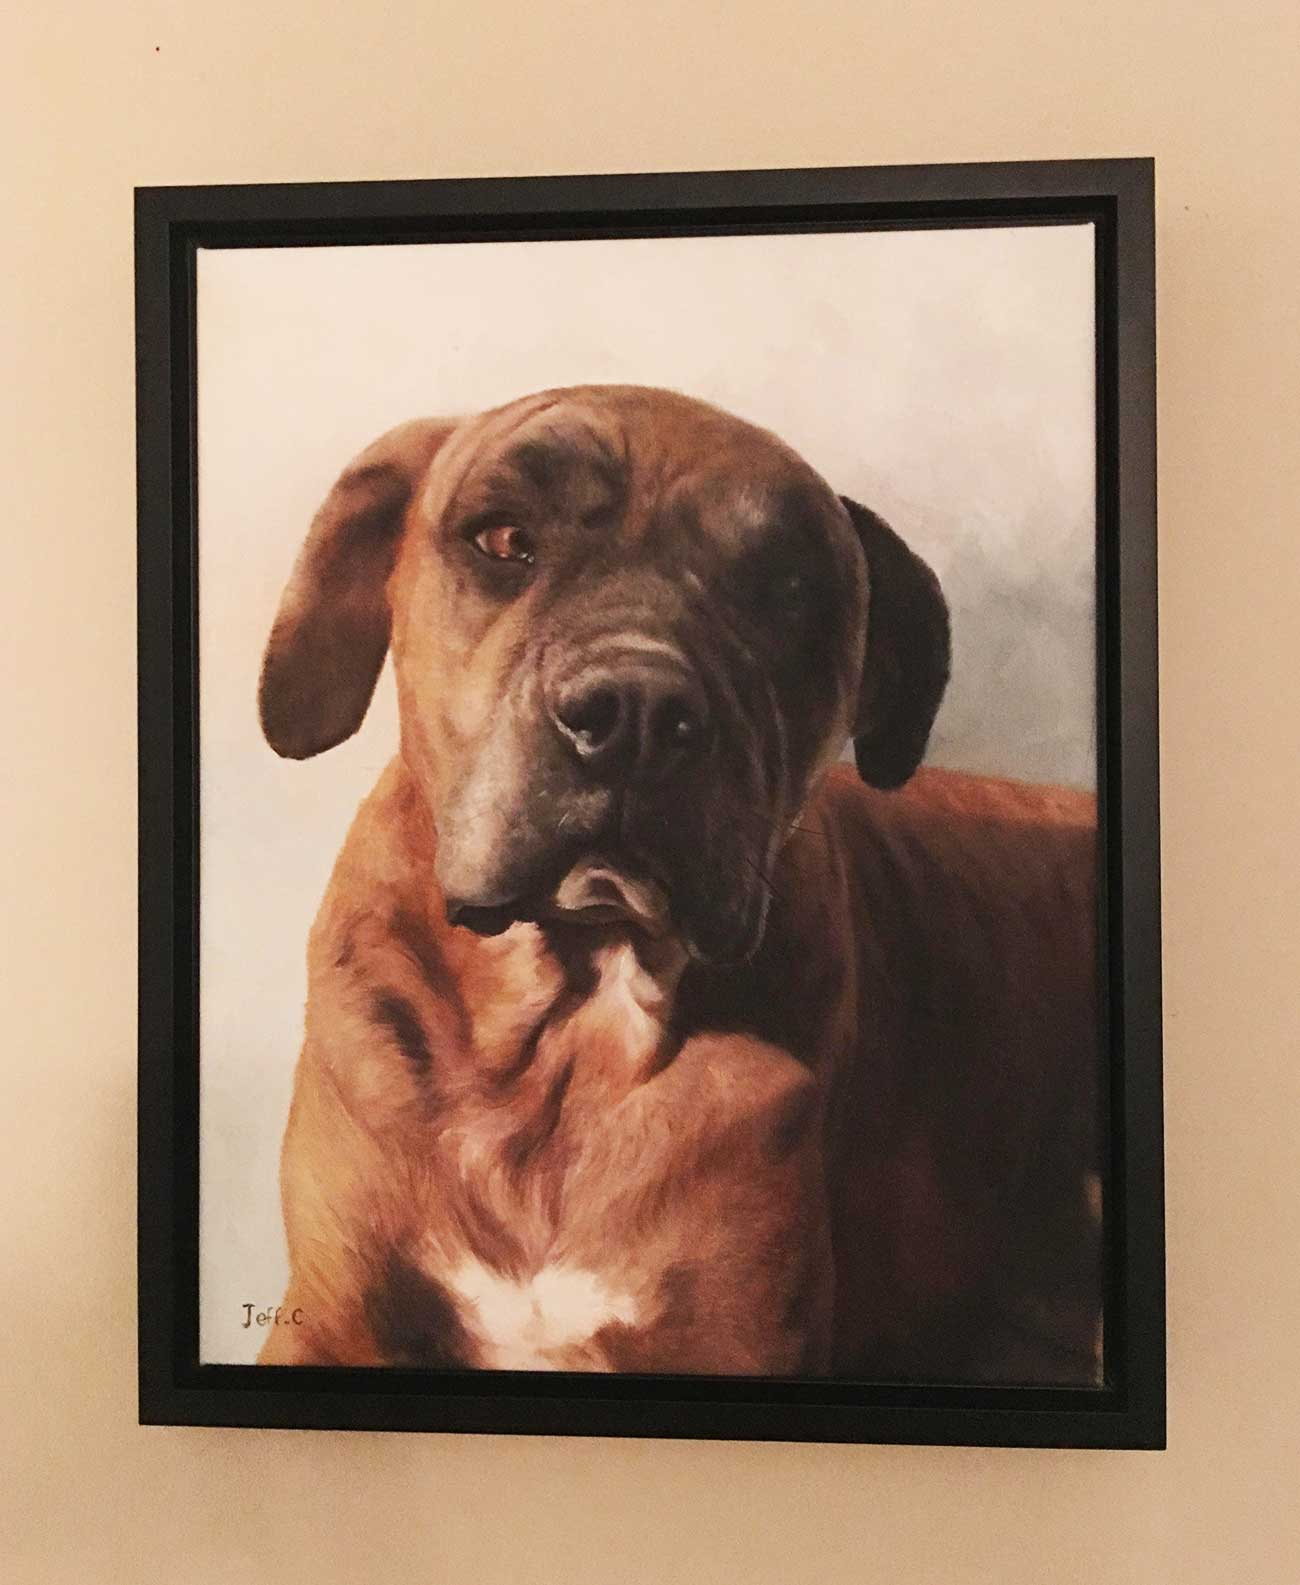 an oil painting of a brown dog memorial